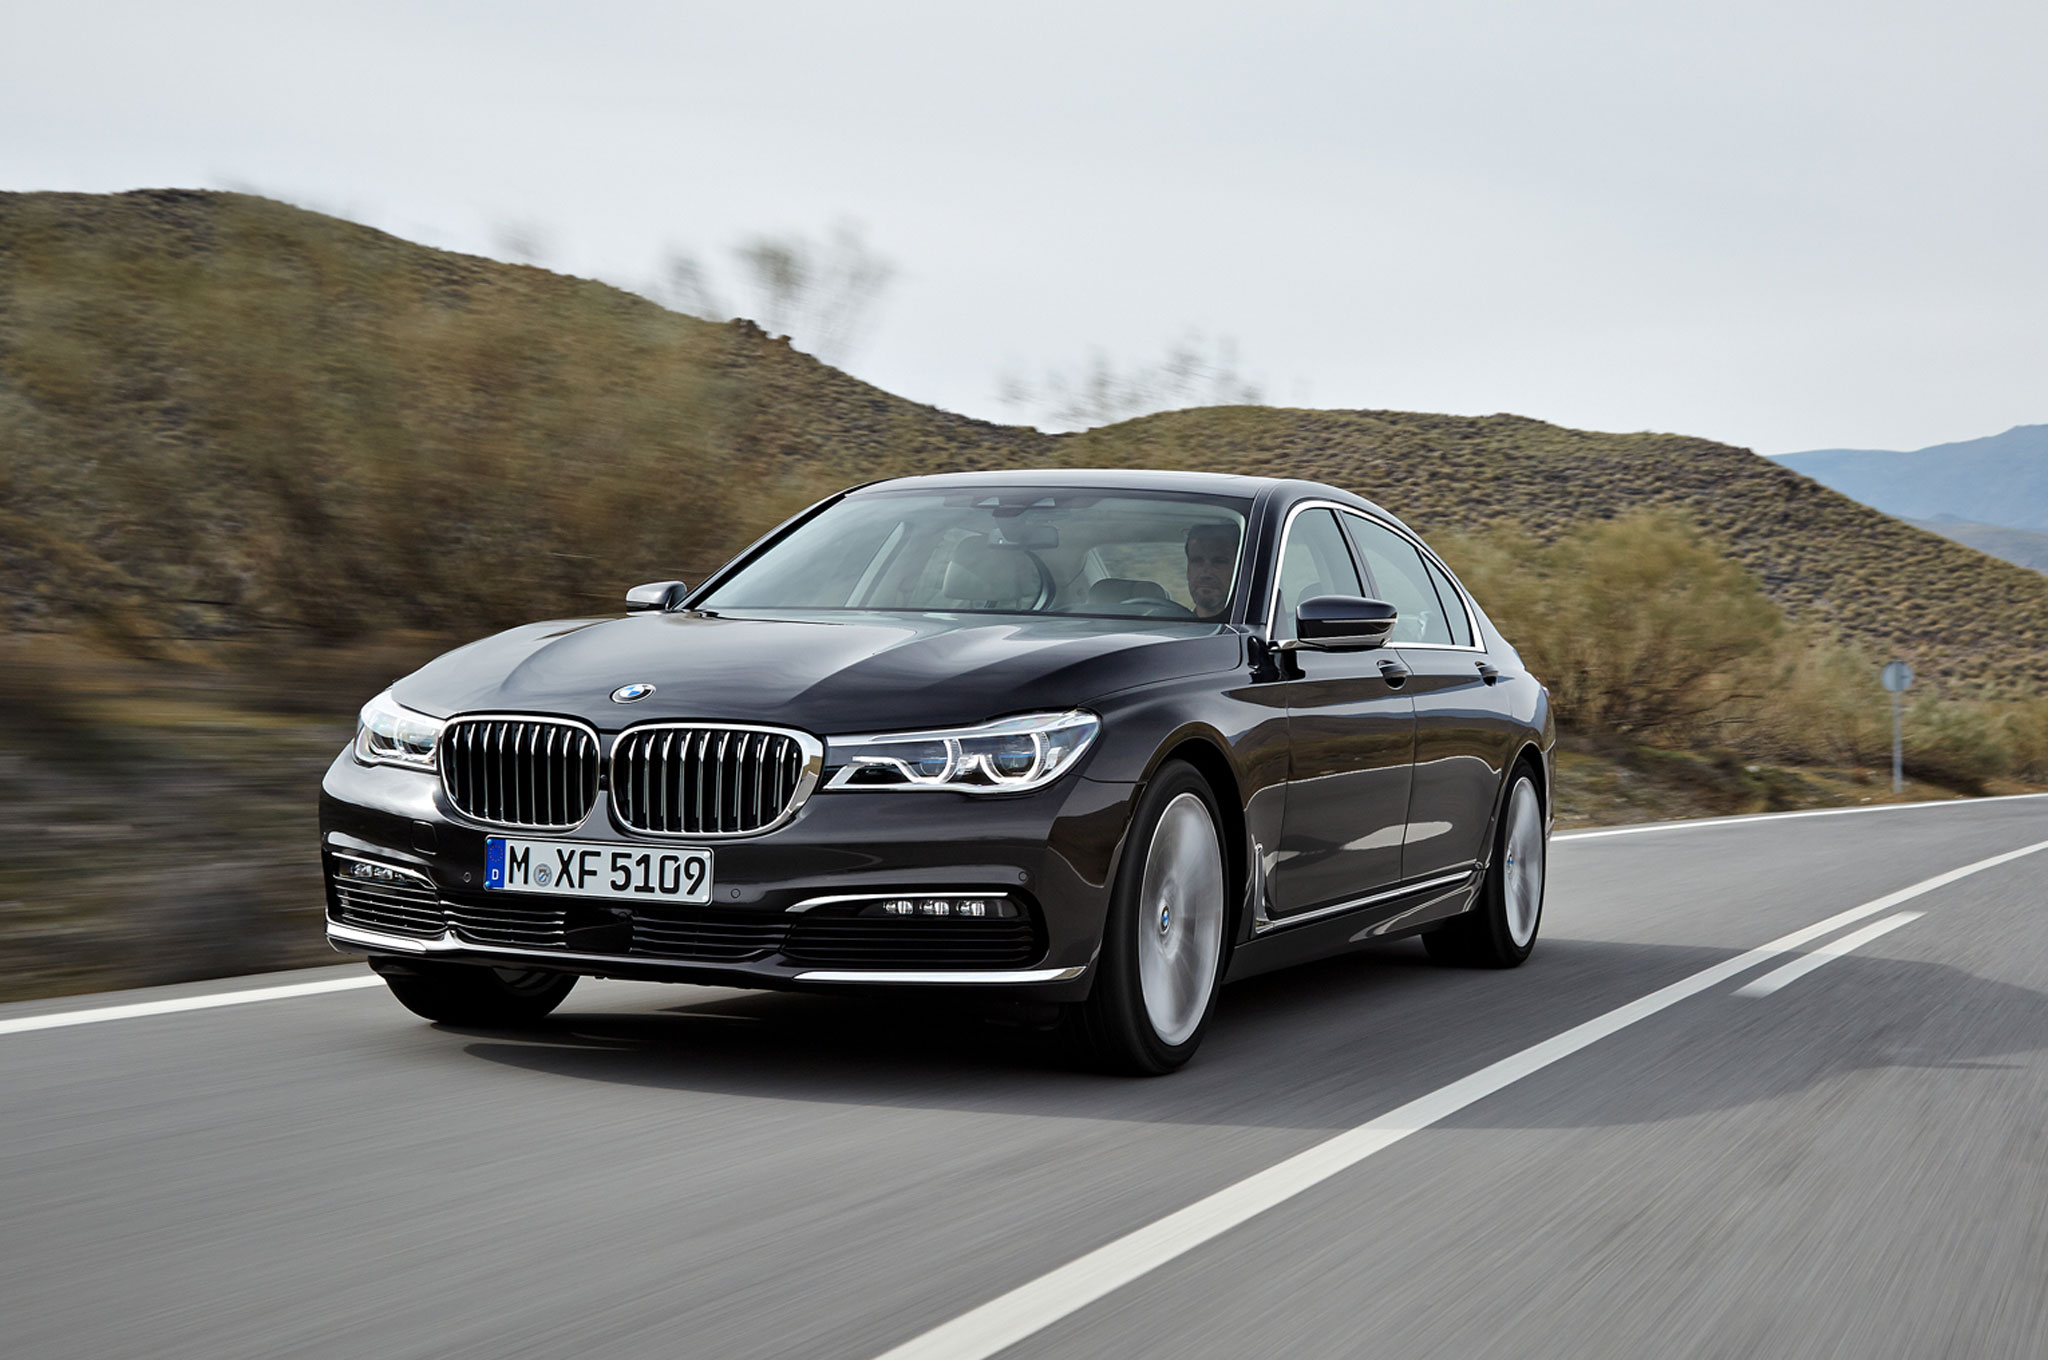 2016 BMW 750Li XDrive Lead